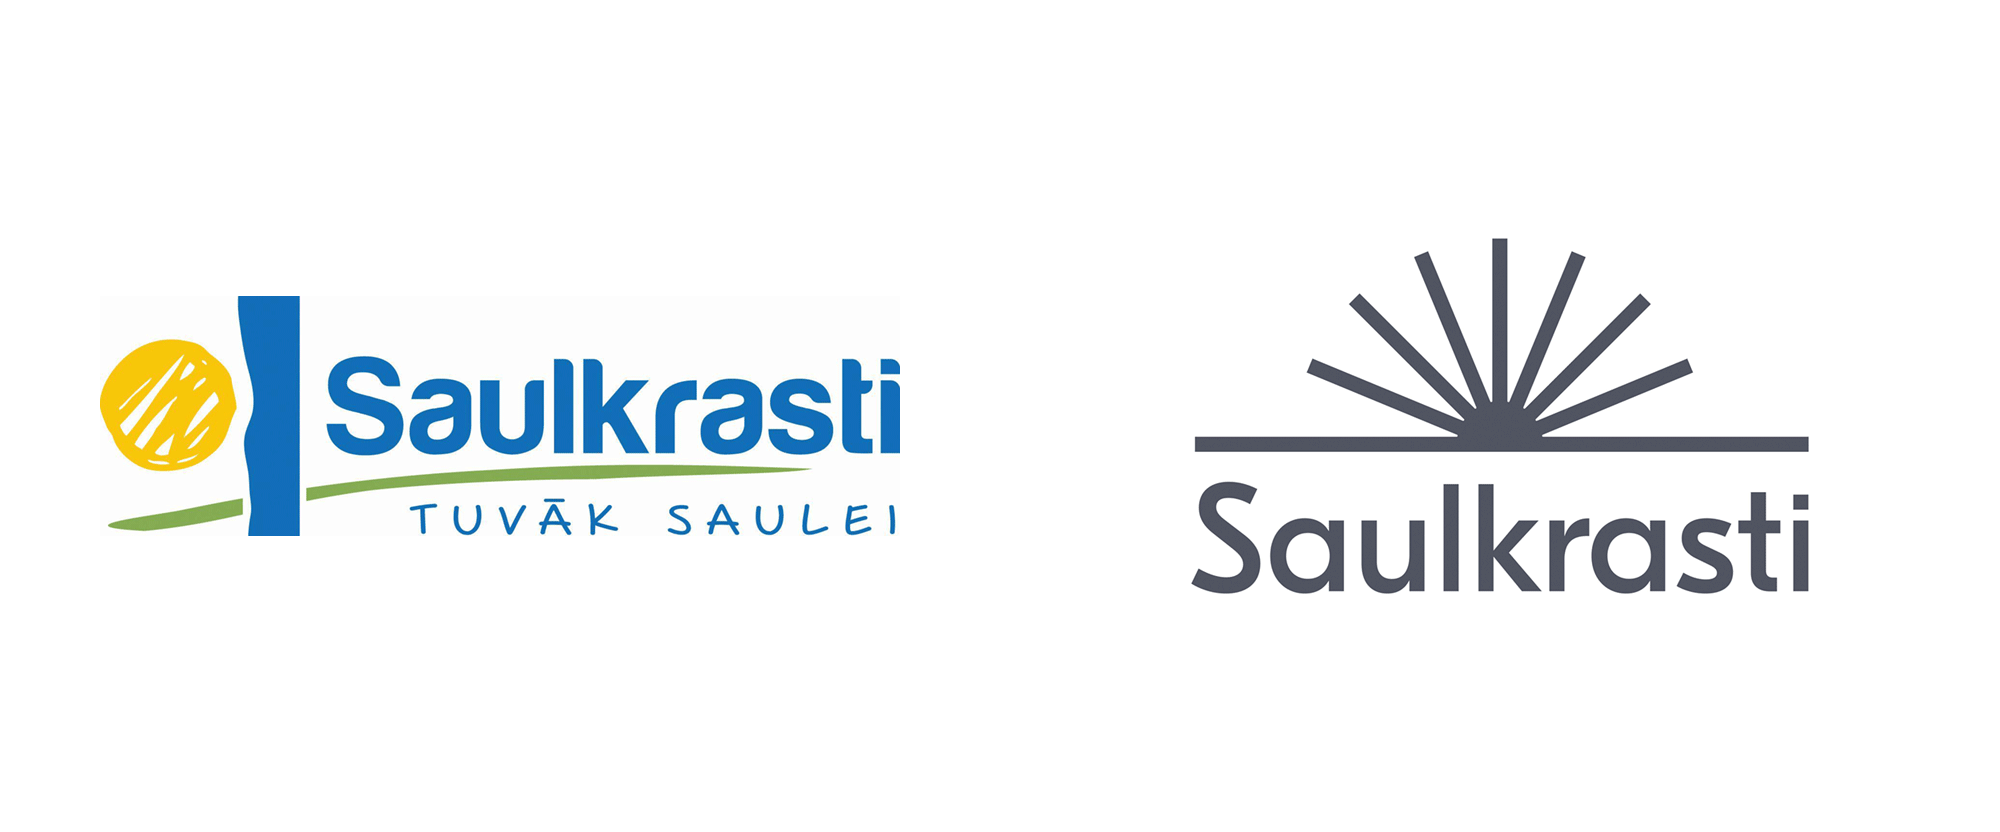 New Logo and Identity for City of Saulkrasti by Azai Studios